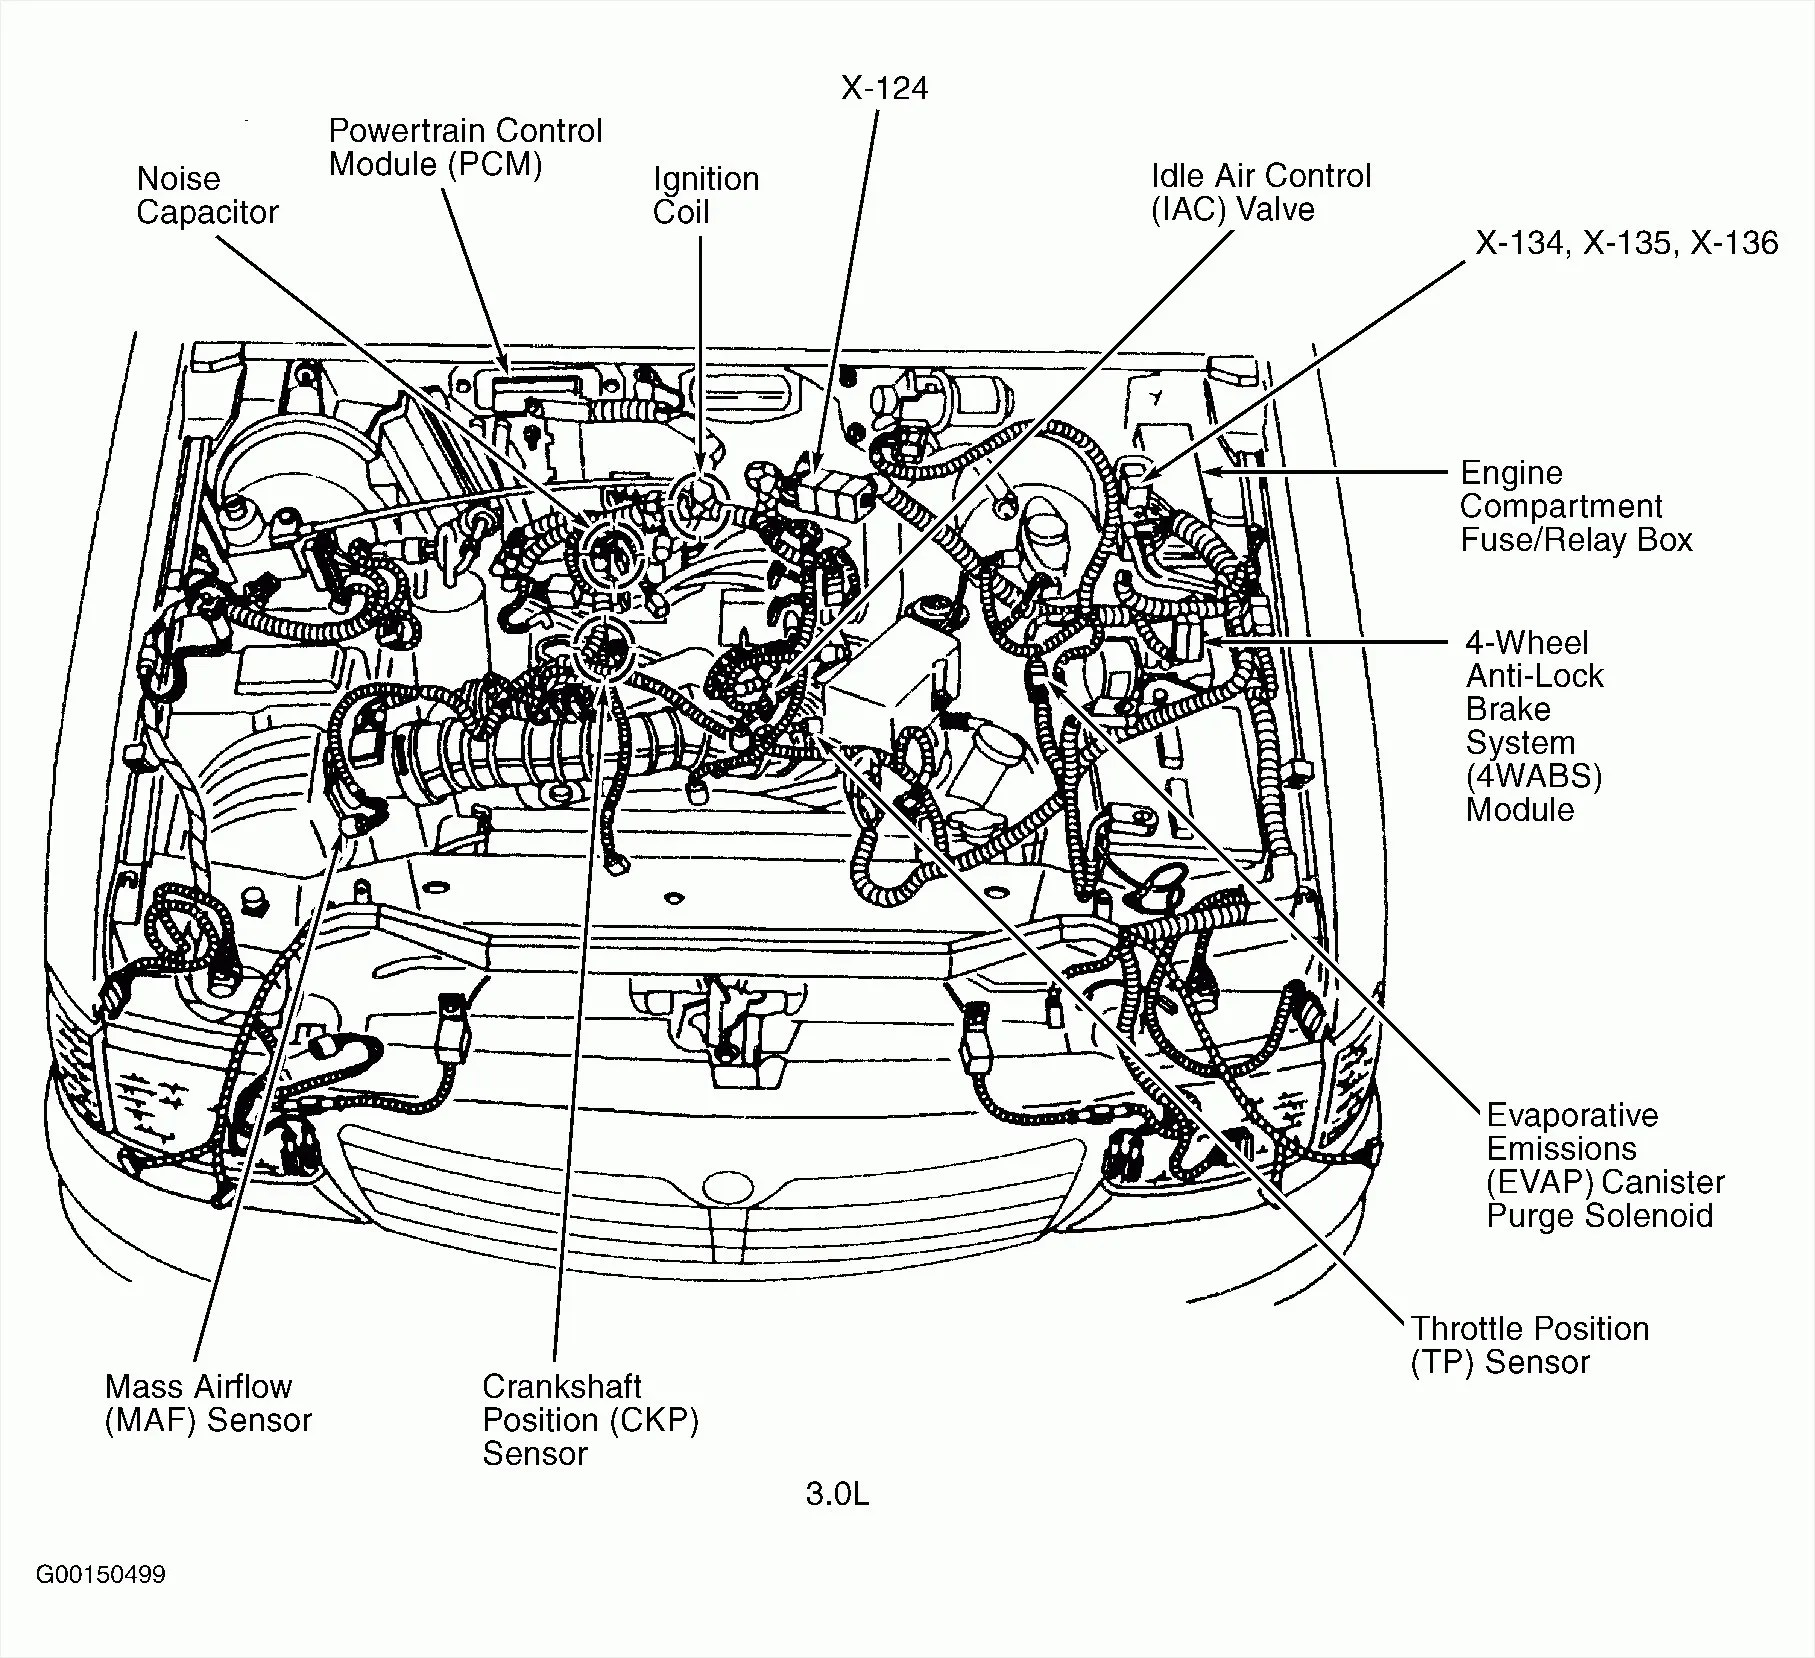 hight resolution of 1988 vw golf engine diagram wiring diagram operations97 jetta engine diagram valve wiring diagram forward 1988